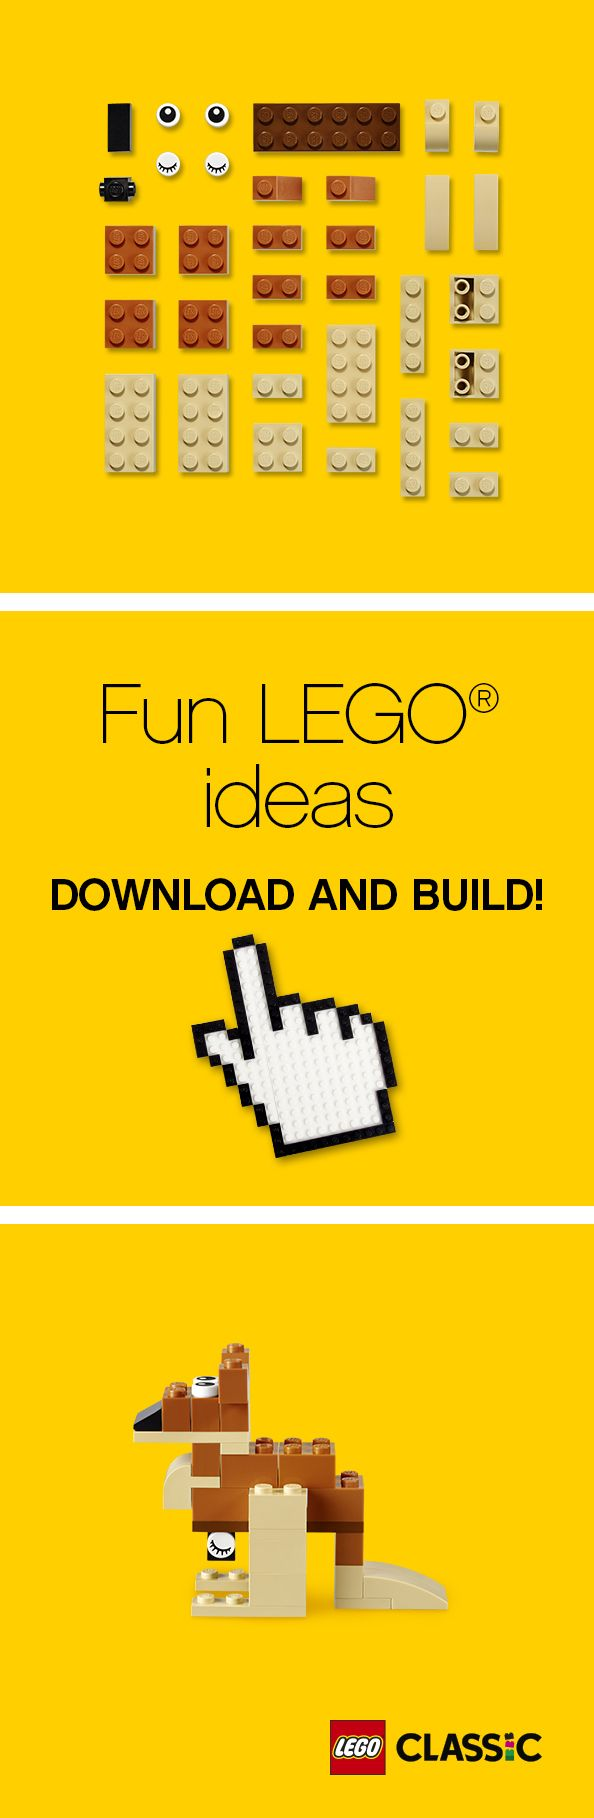 Happy Australia Day! Hop, skip and jump over to our building instructions, and create your very own LEGO kangaroo in a flash! Your family will love this festive gift or activity.